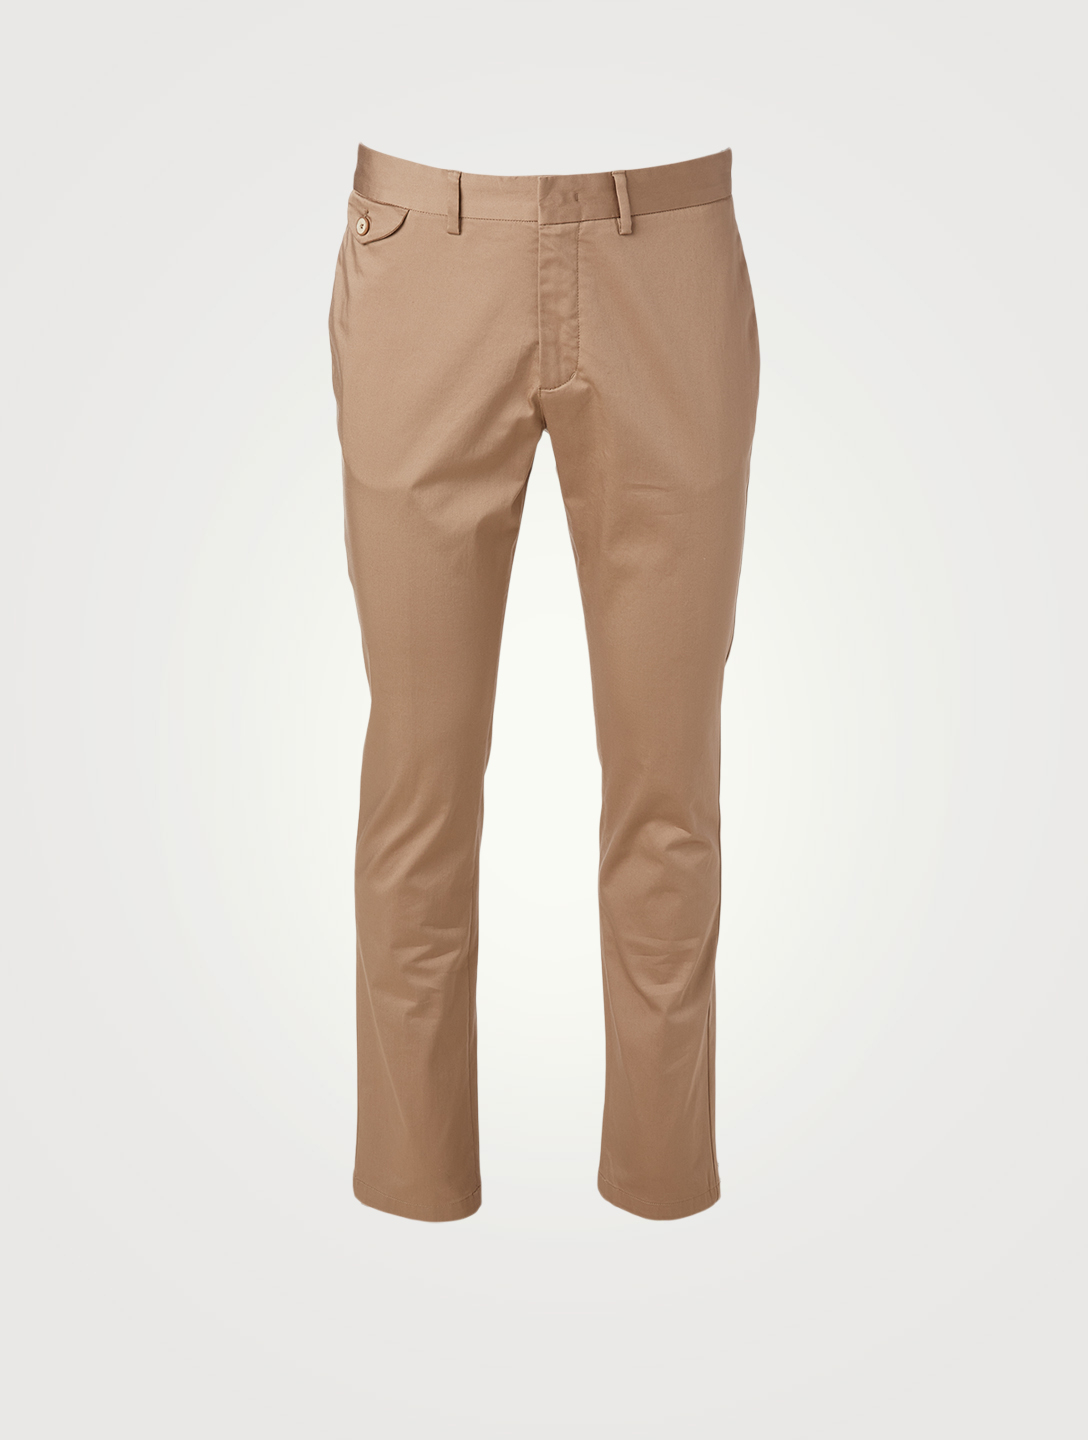 ORLEBAR BROWN Myers Compact Cotton Tailored Pants Men's Beige